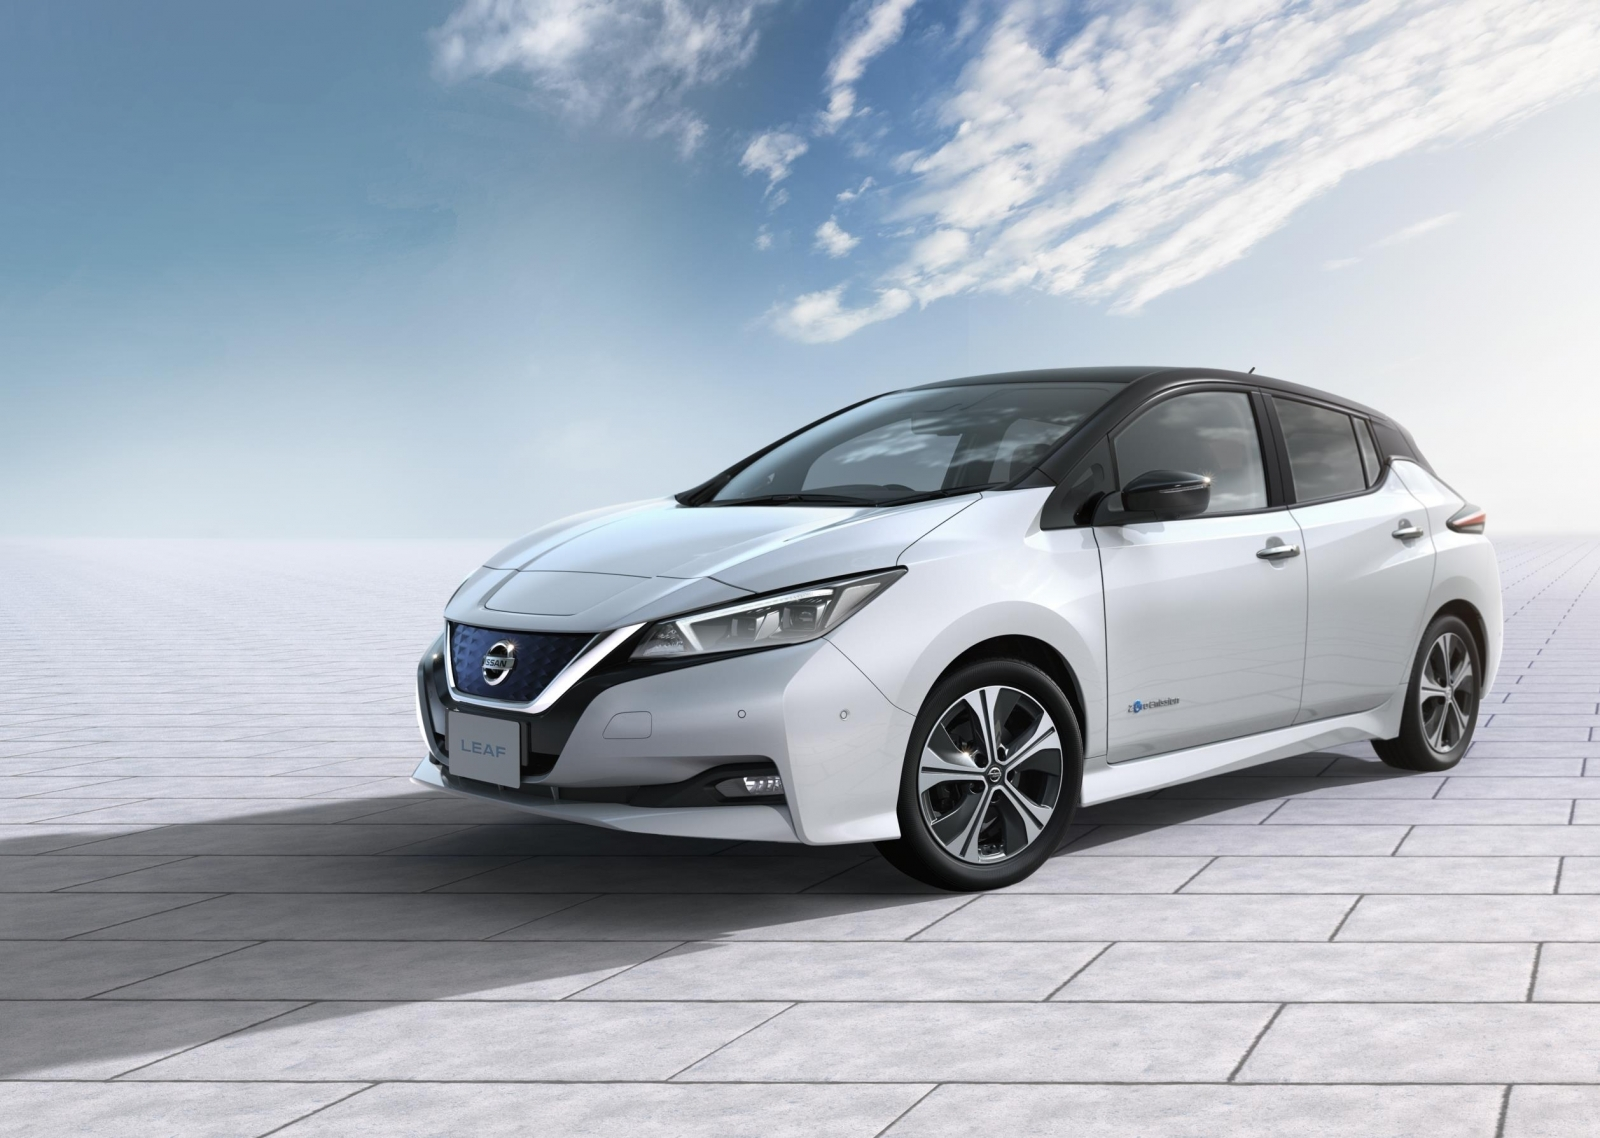 Is the Nissan Leaf still competitive? Absolutely. Here's why